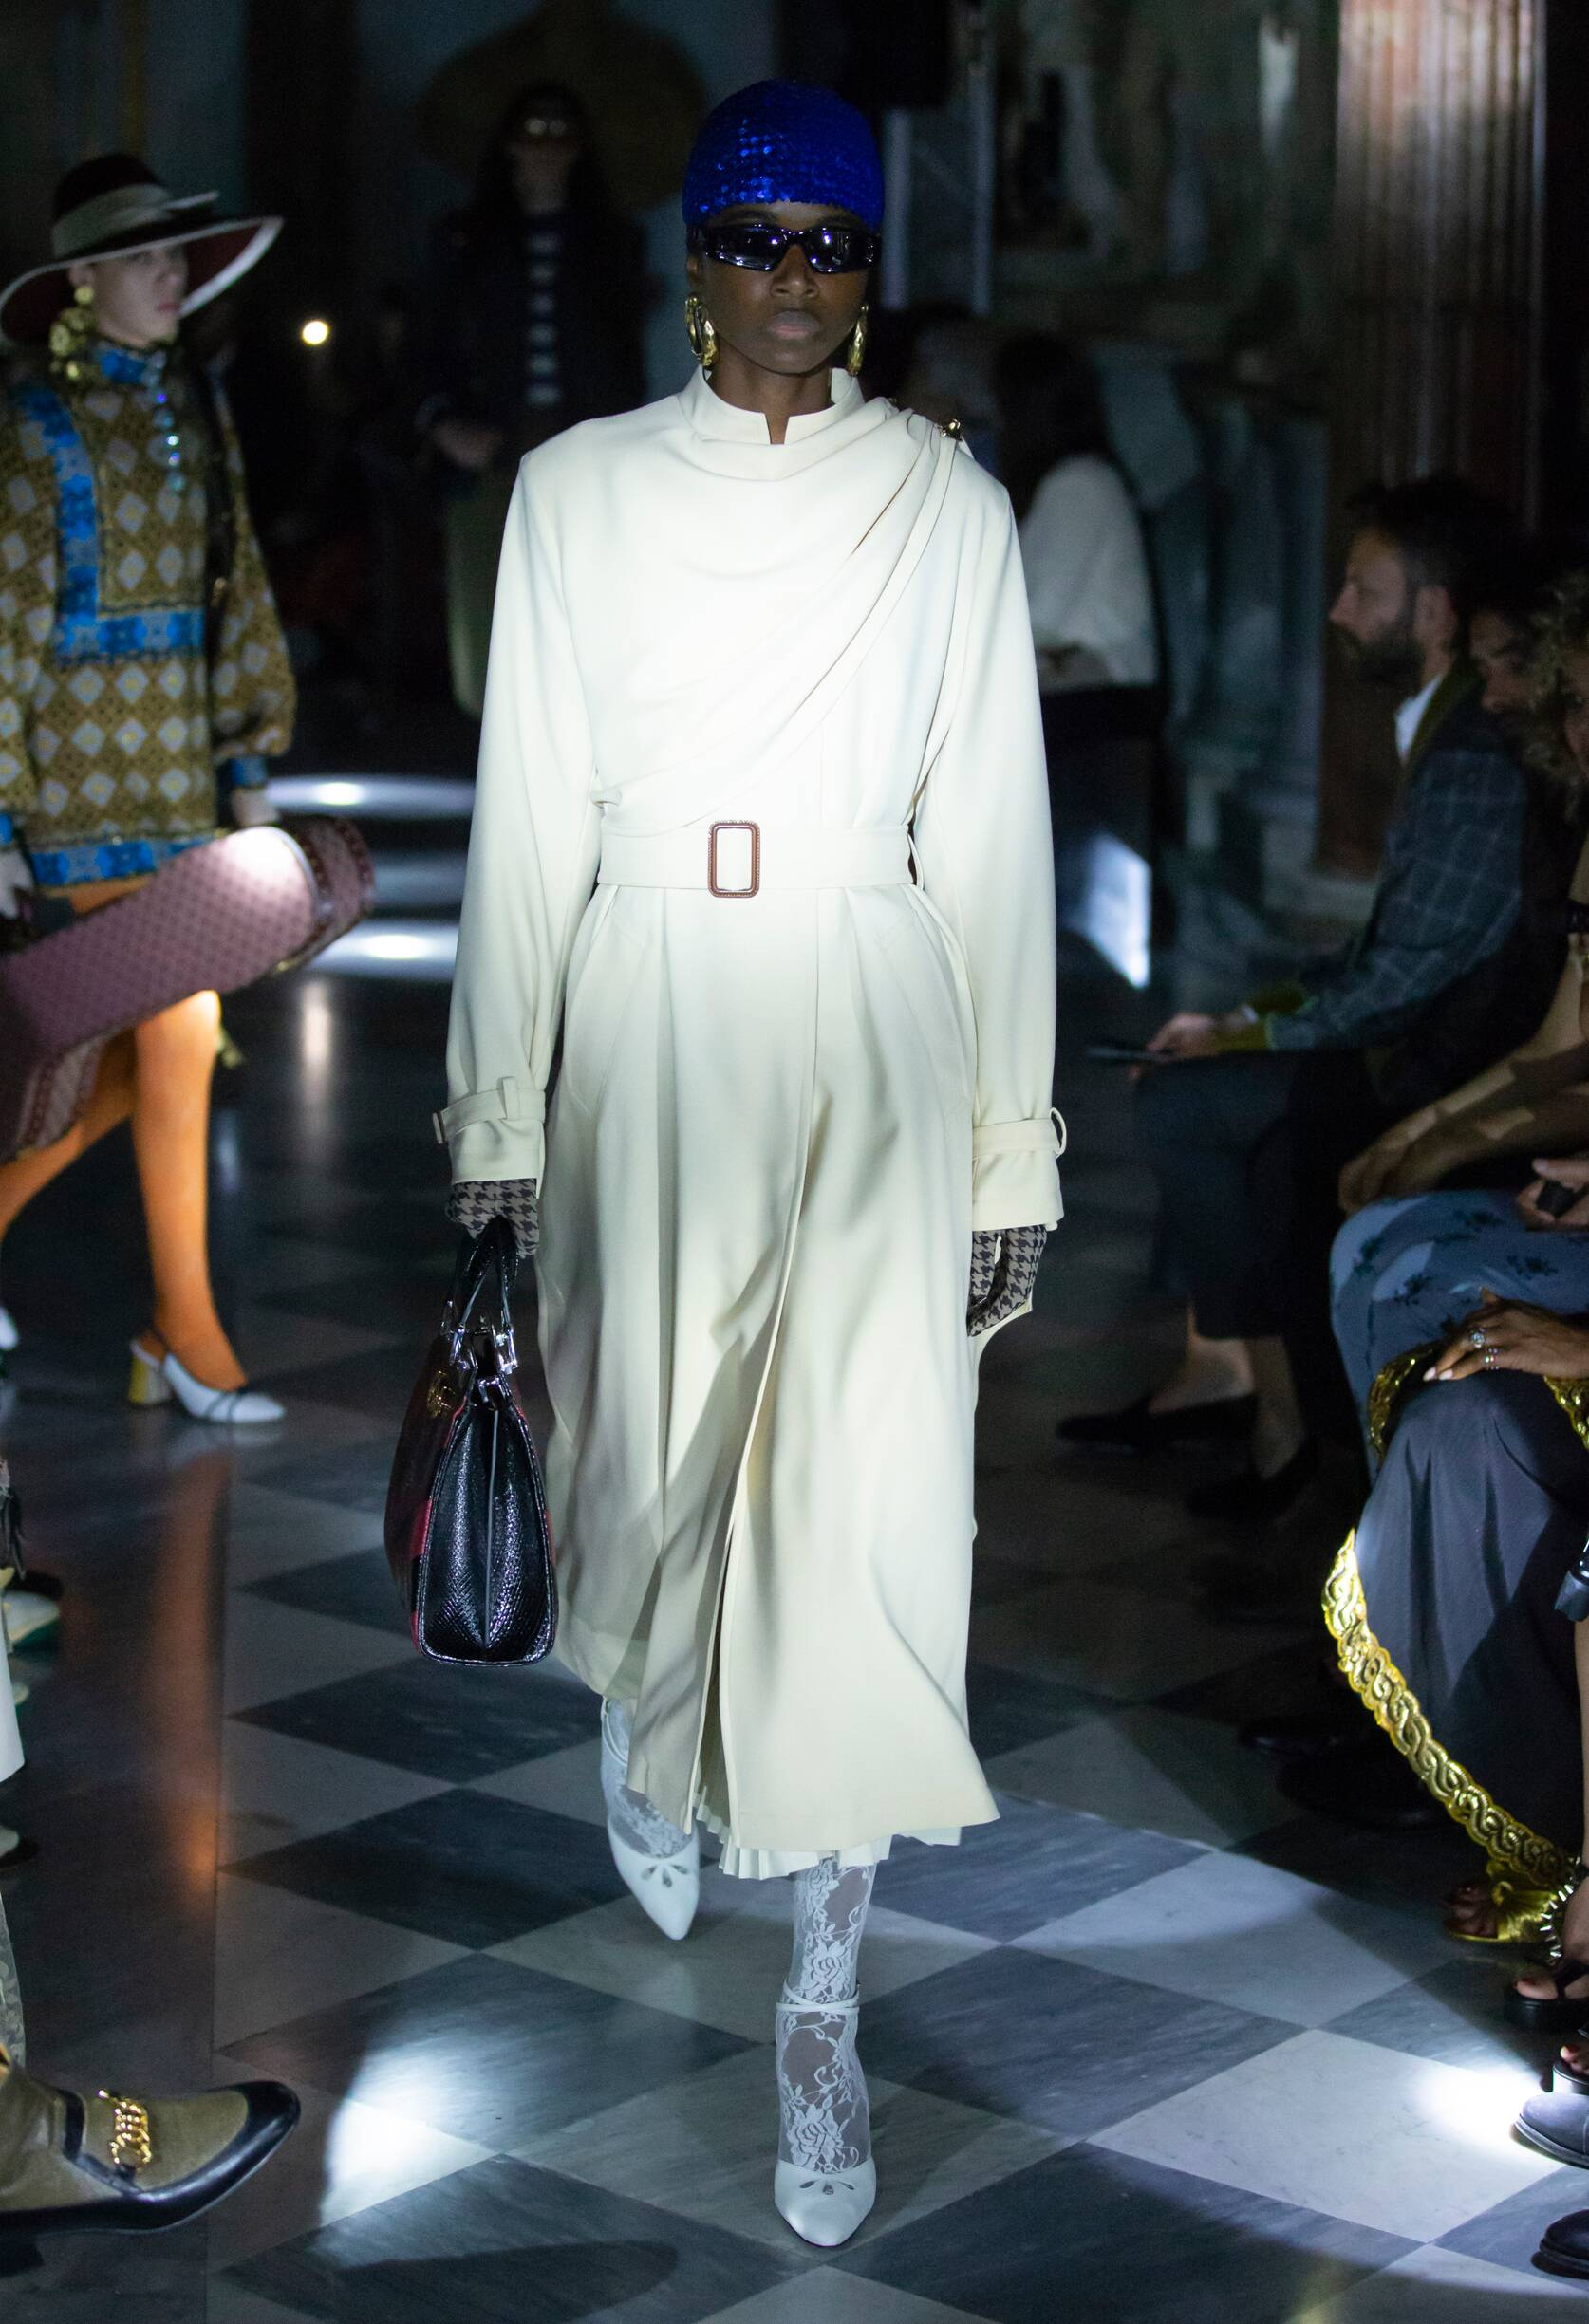 Gucci Cruise 2020 Collection Look 38 Rome